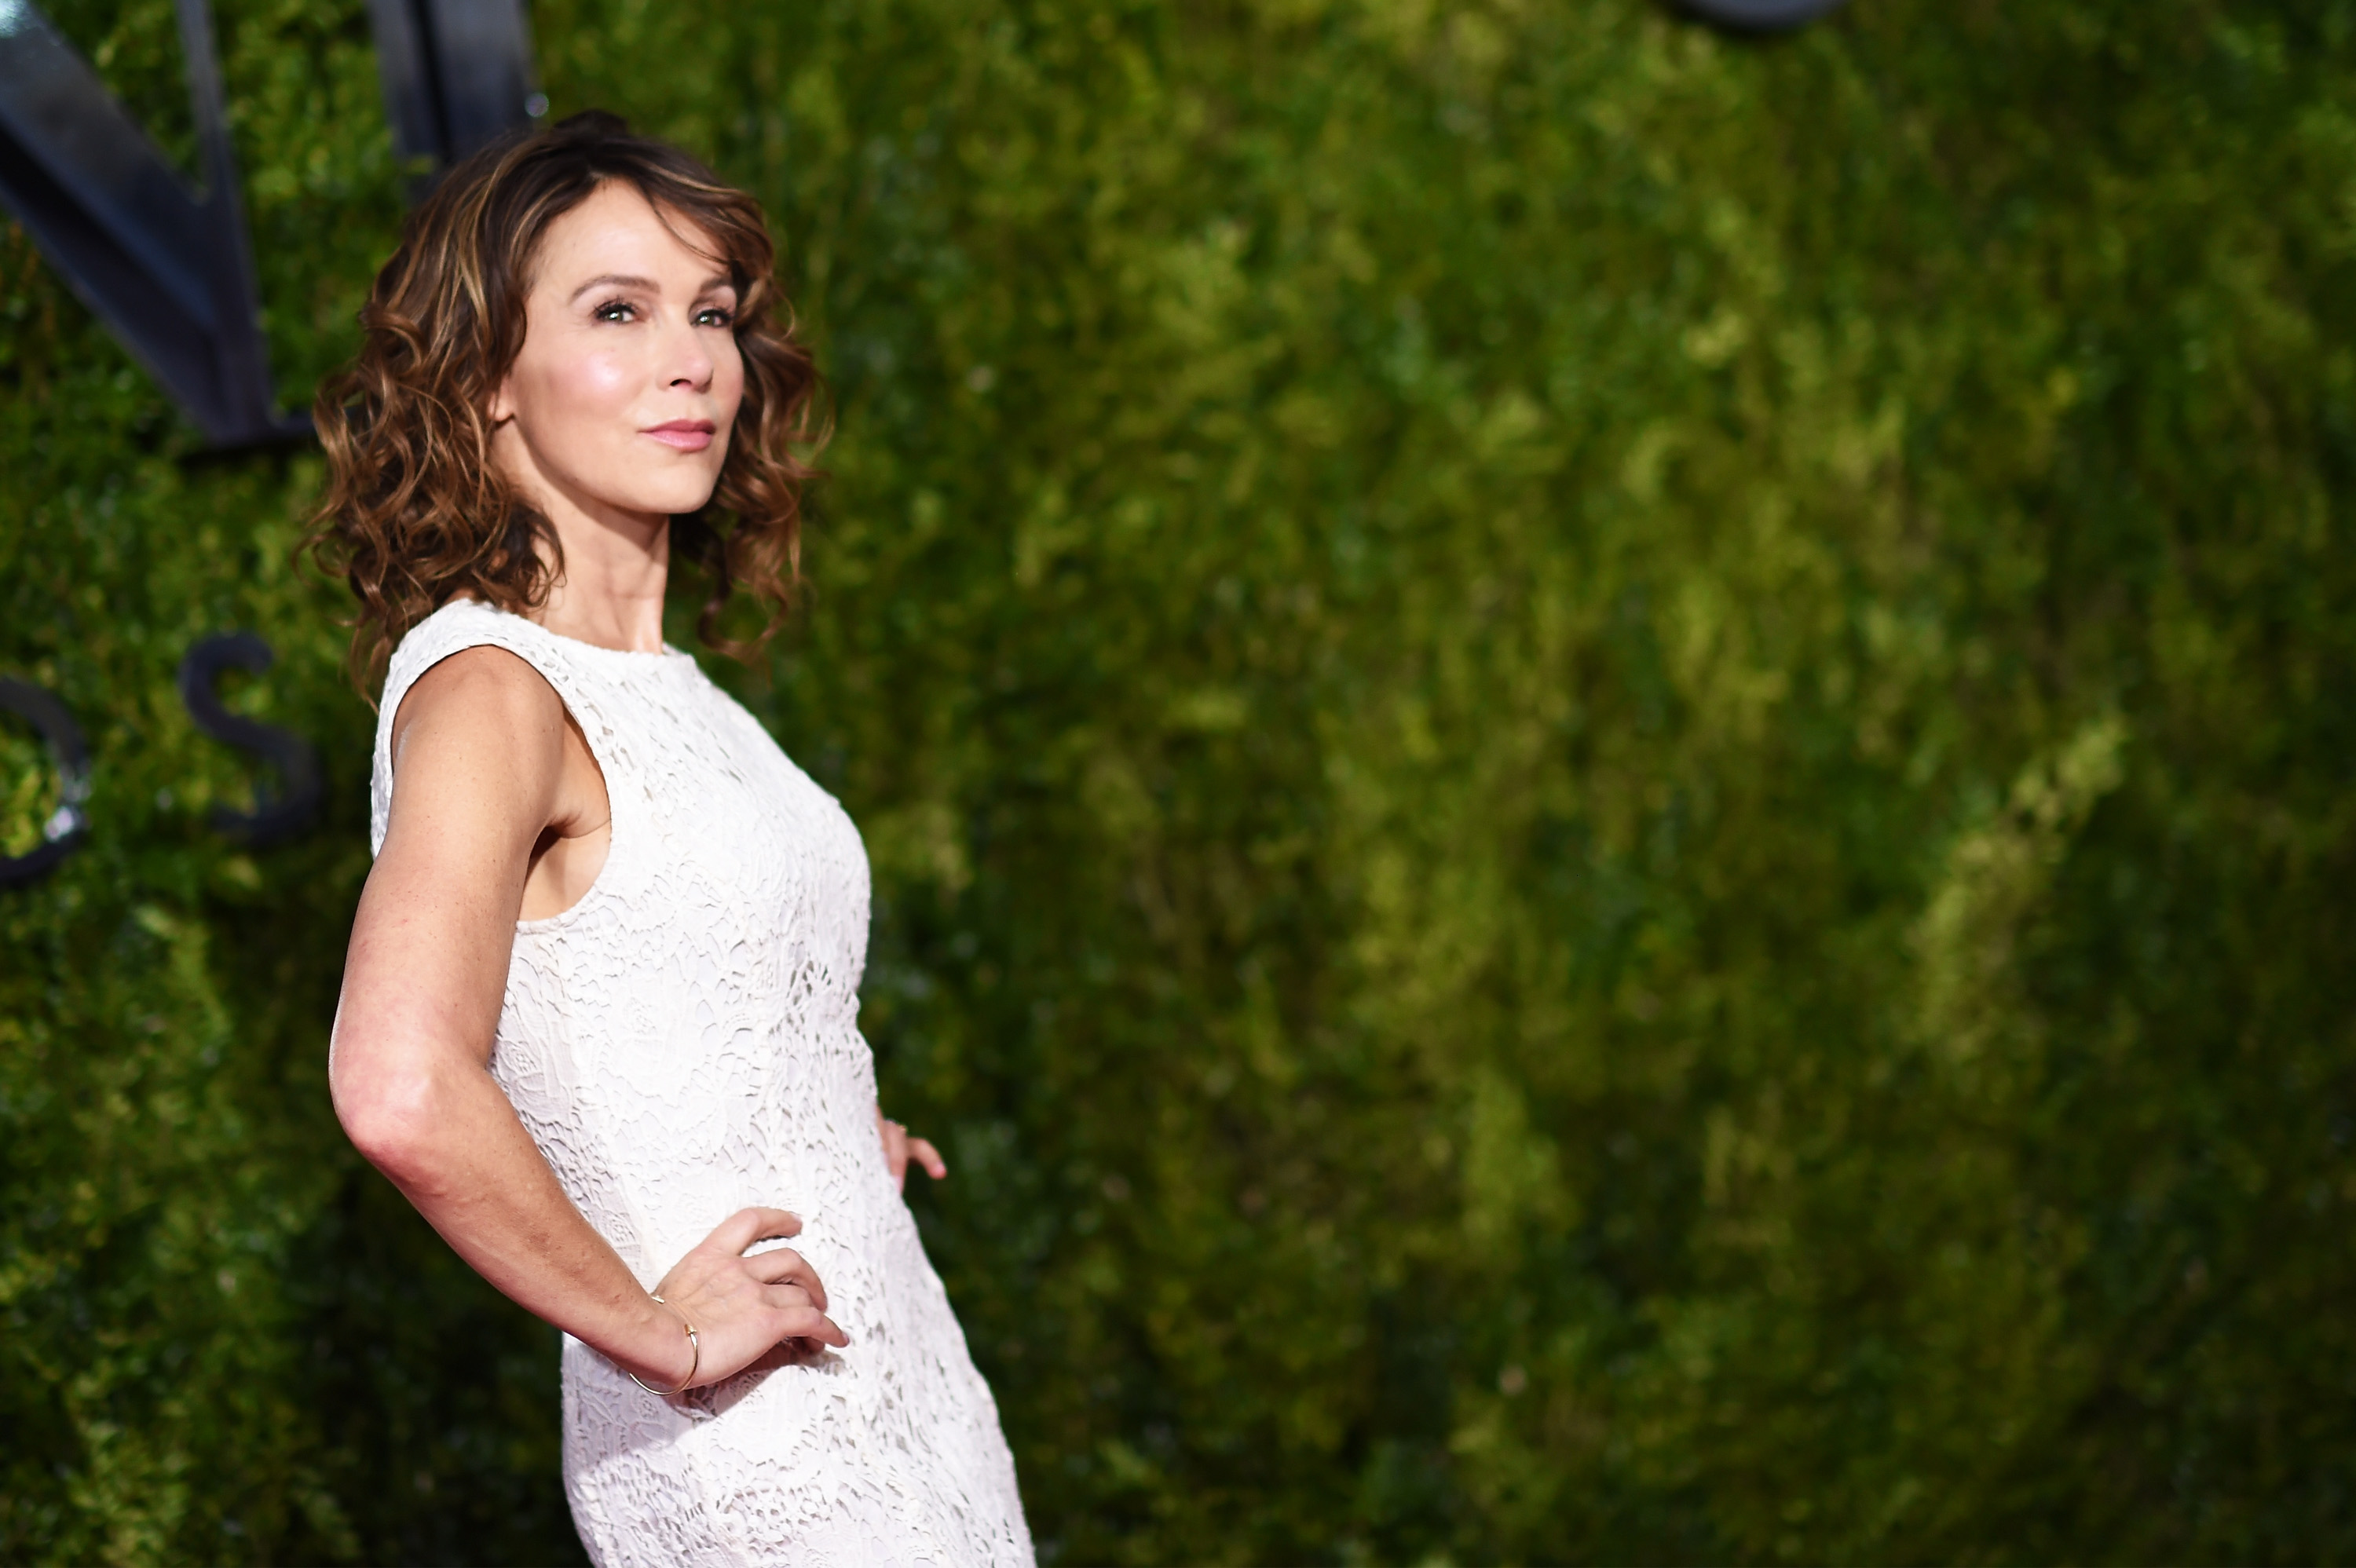 Jennifer Grey attends the 2015 Tony Awards at Radio City Music Hall on June 7, 2015 in New York City.